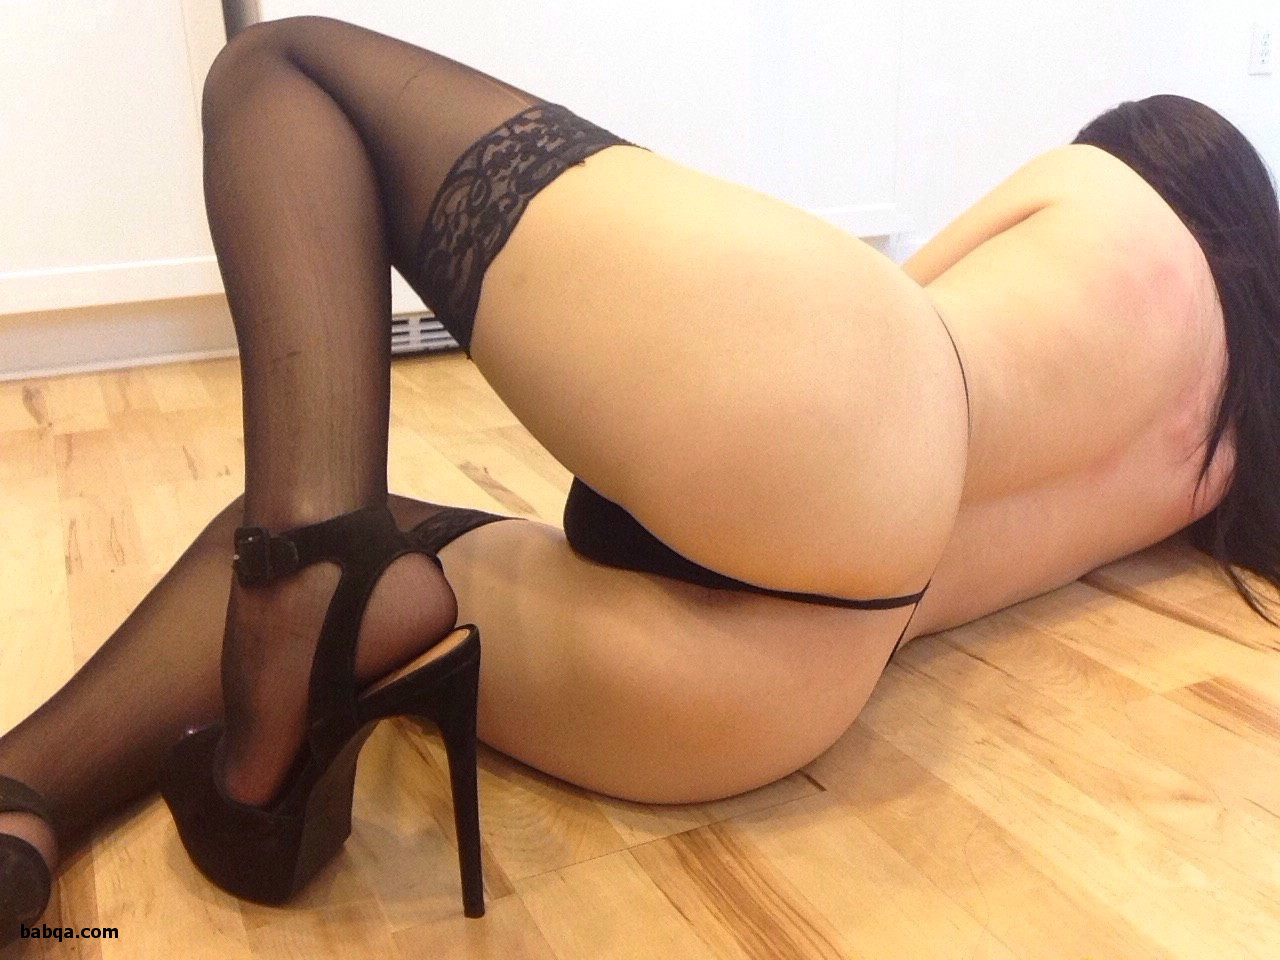 thigh high medical stockings and sexy asian lingerie girls